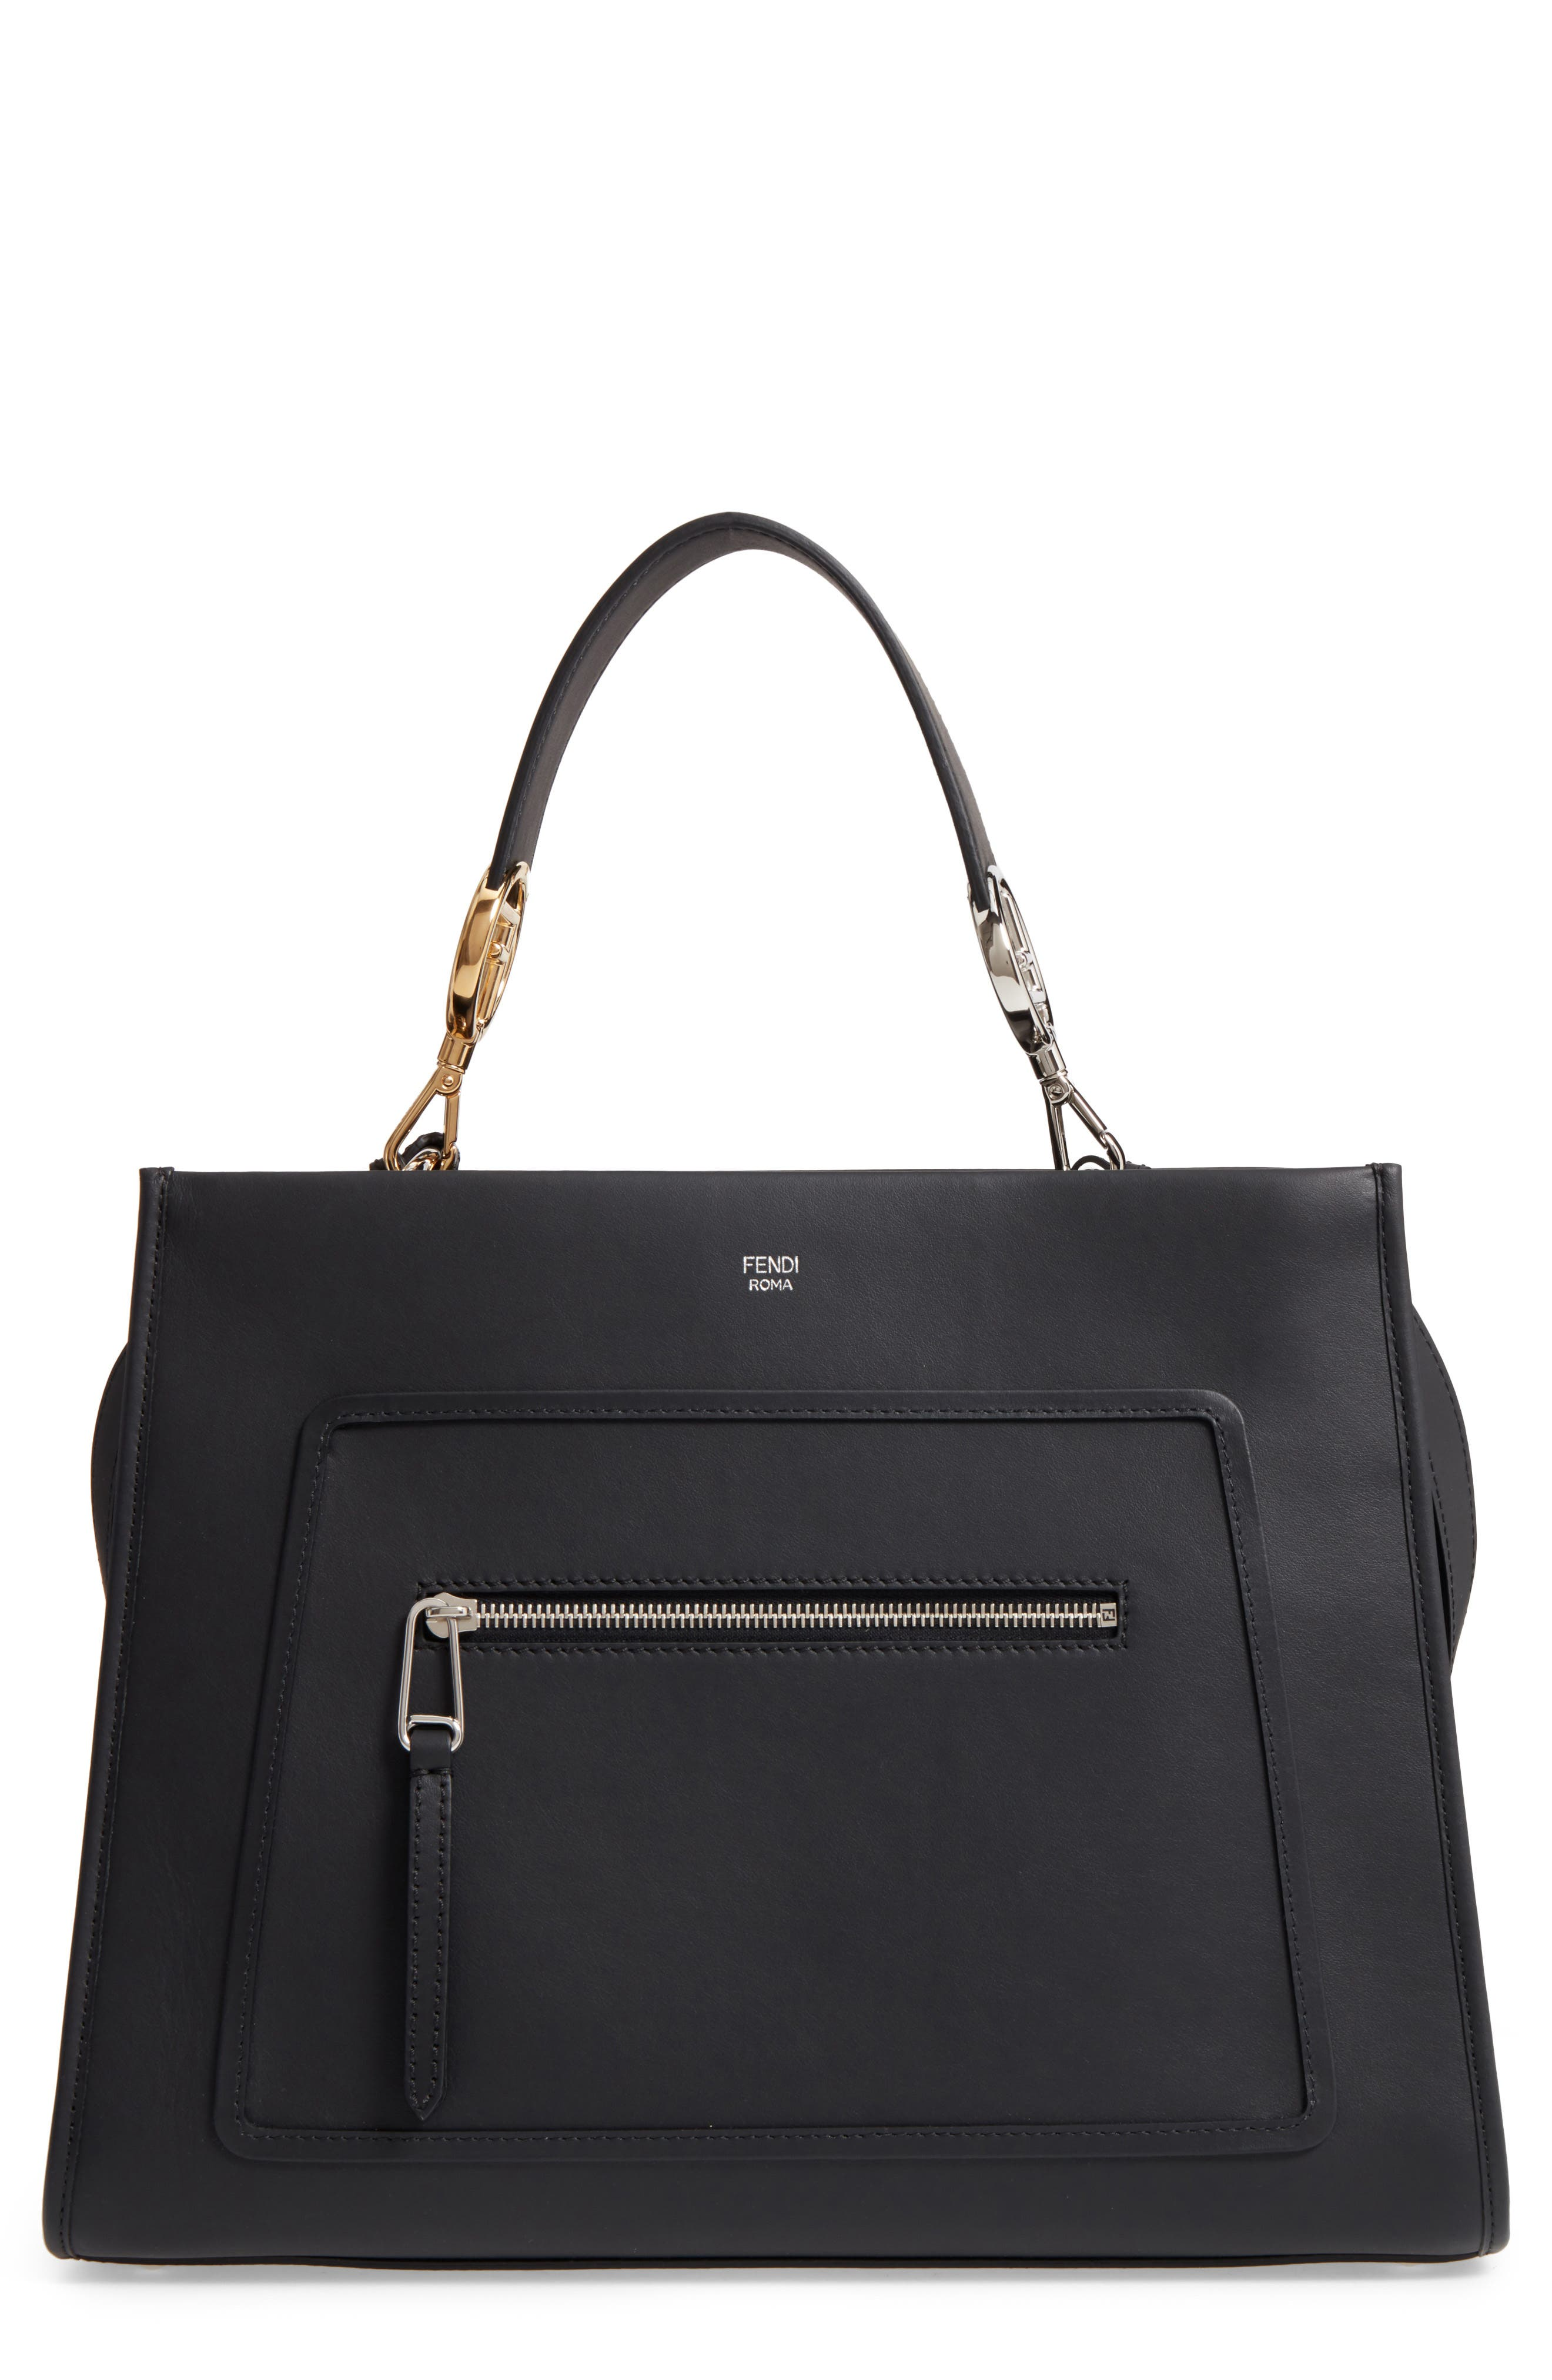 Fendi Runaway Leather Top Handle Satchel